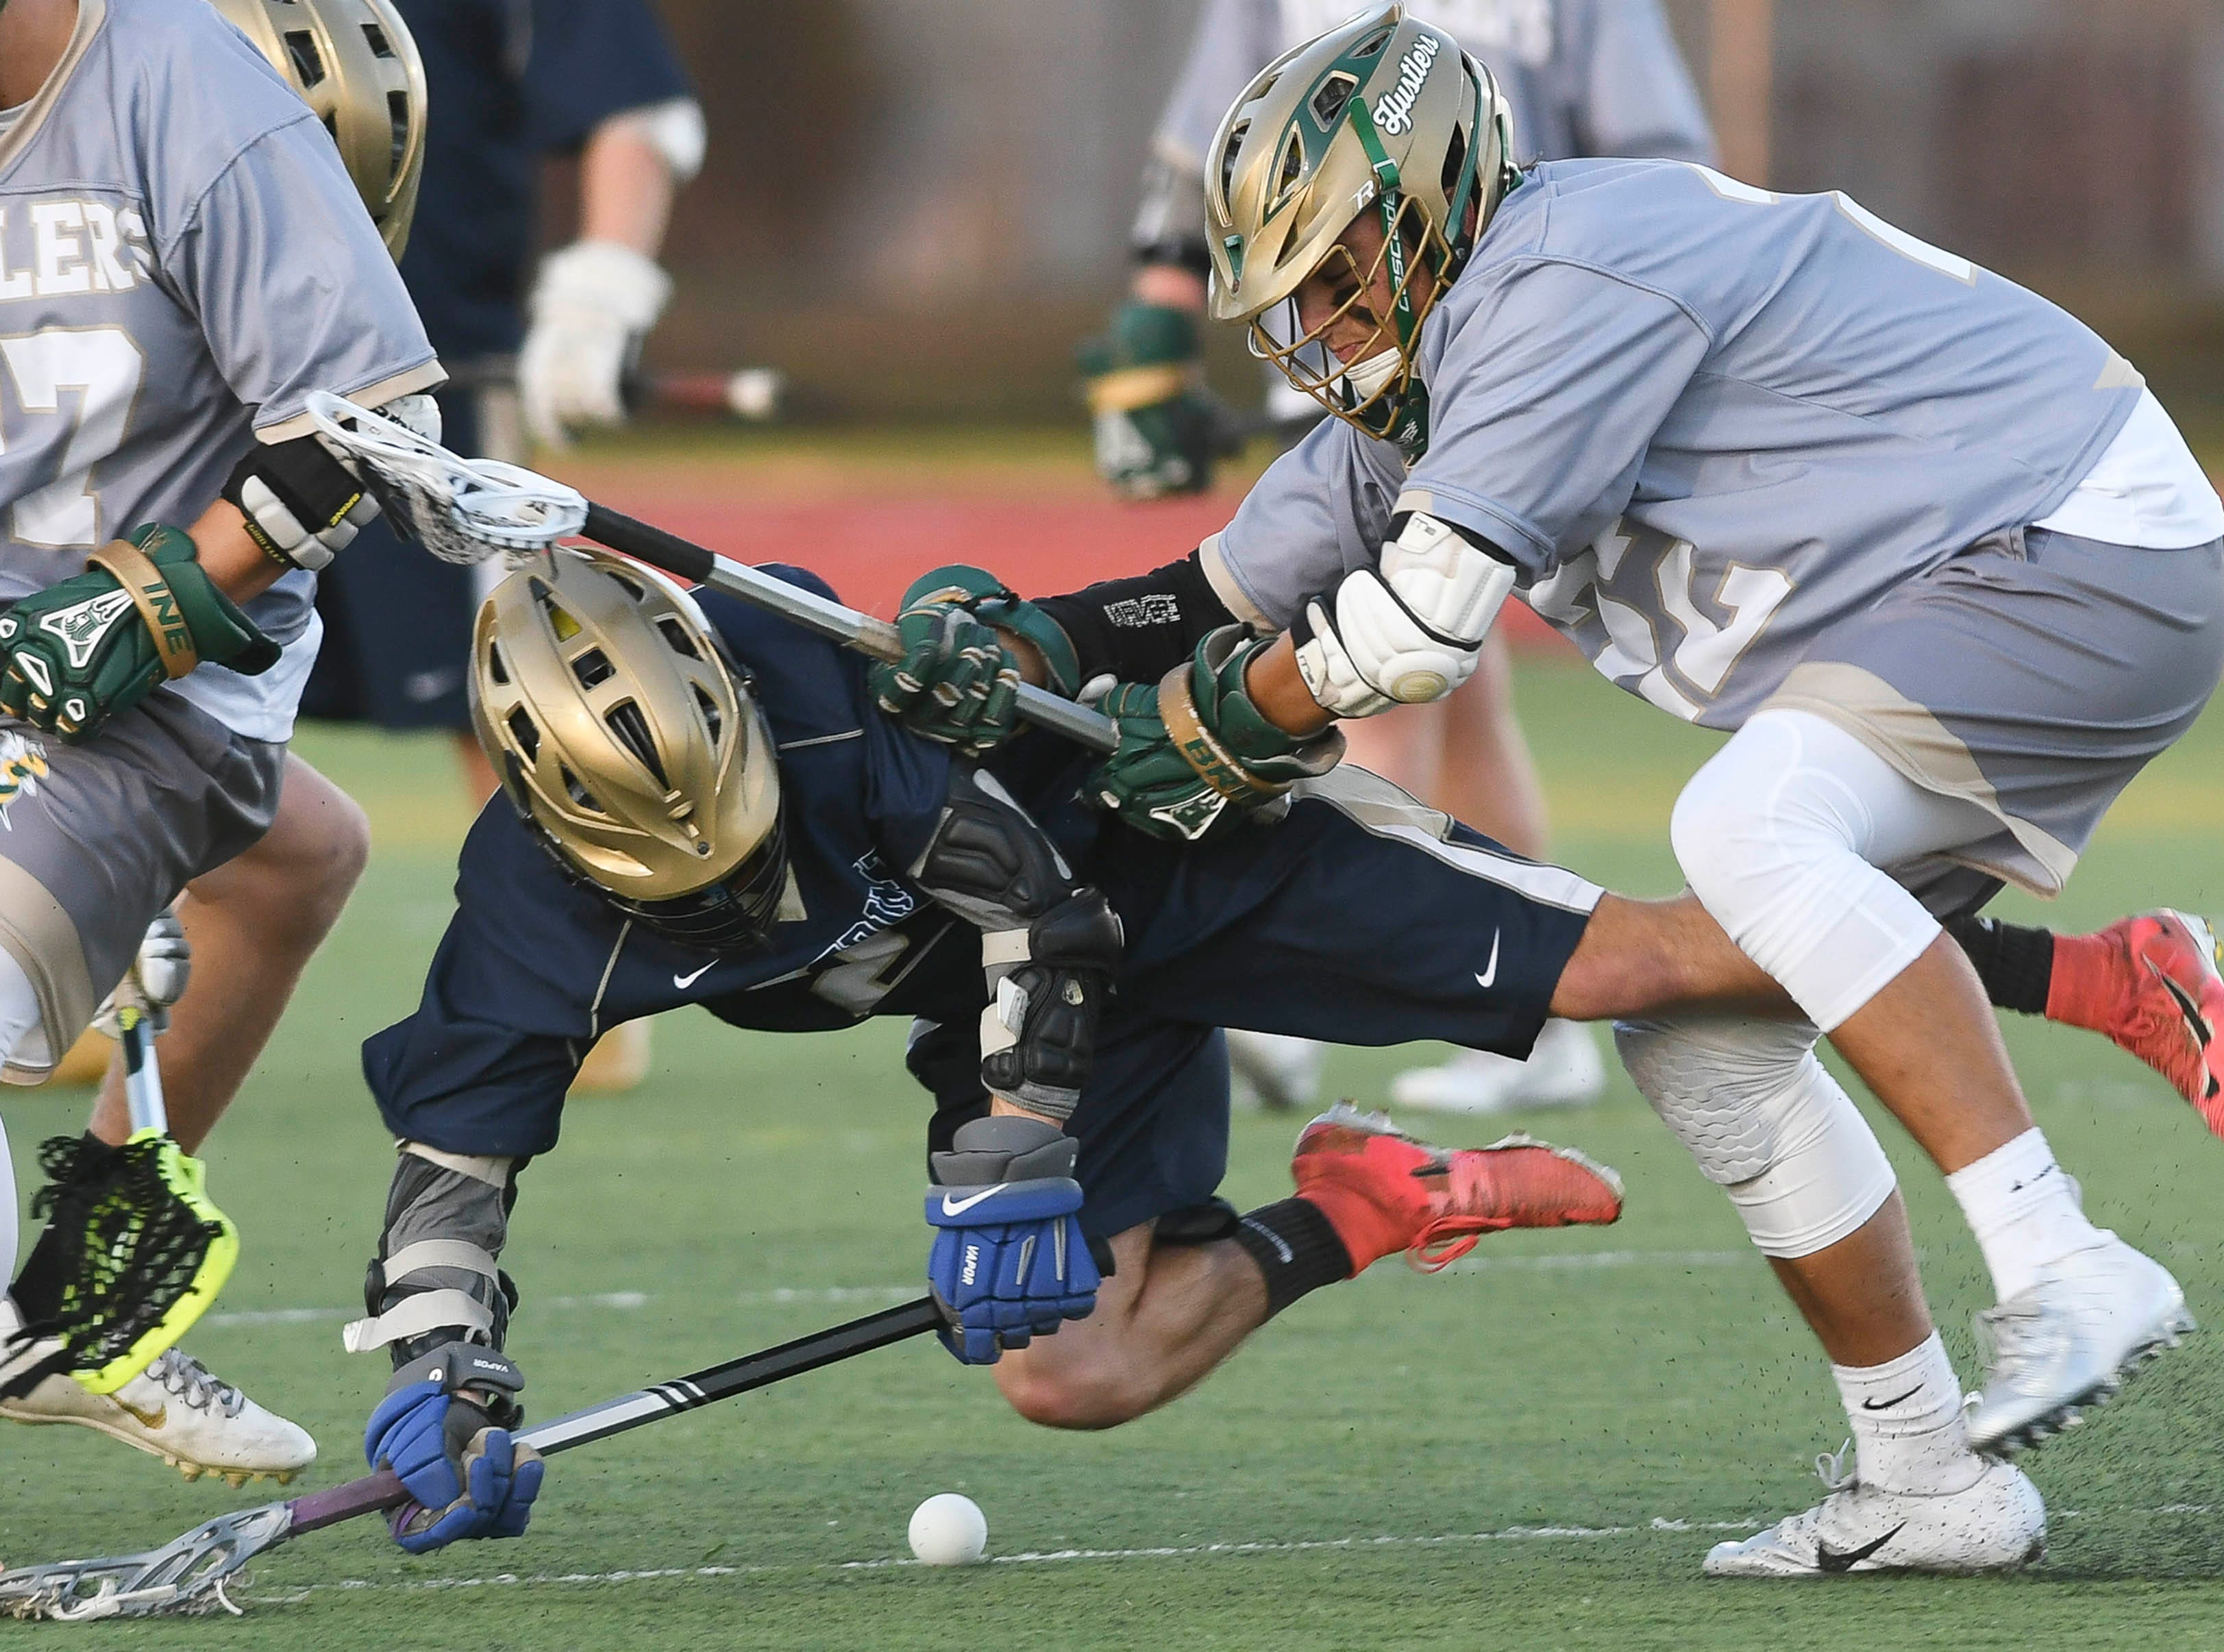 Hunter Gaskin of Holy Trinity and Nolan Penn of Melbourne Central Catholic collide during Friday's game.